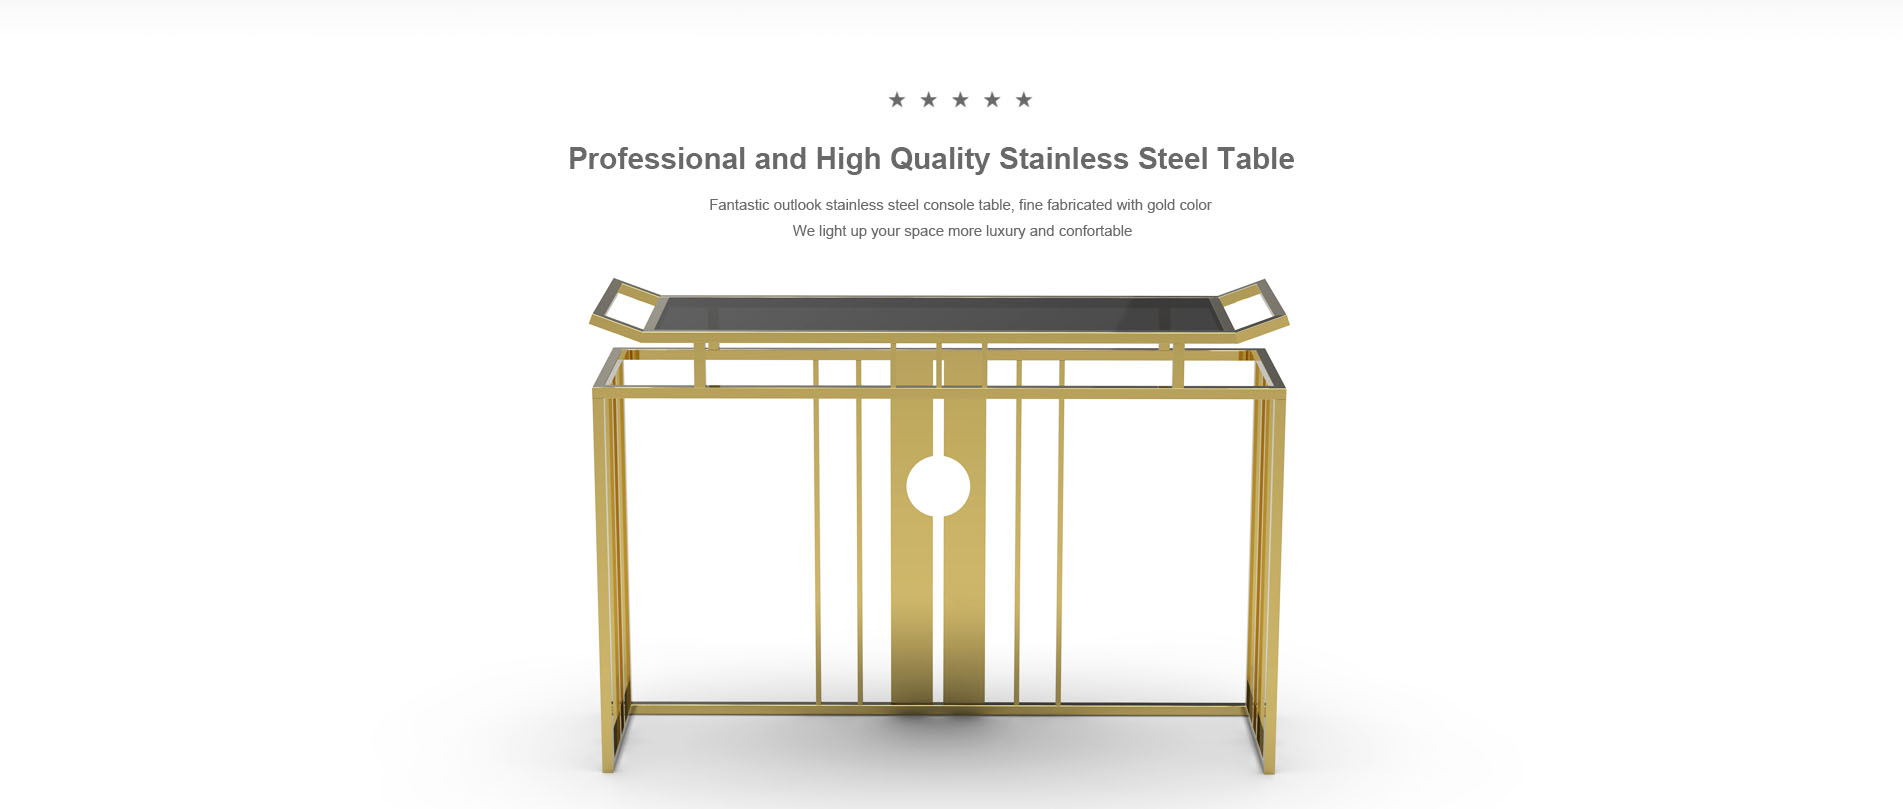 Goldeco home stainless steel furniture 1-2